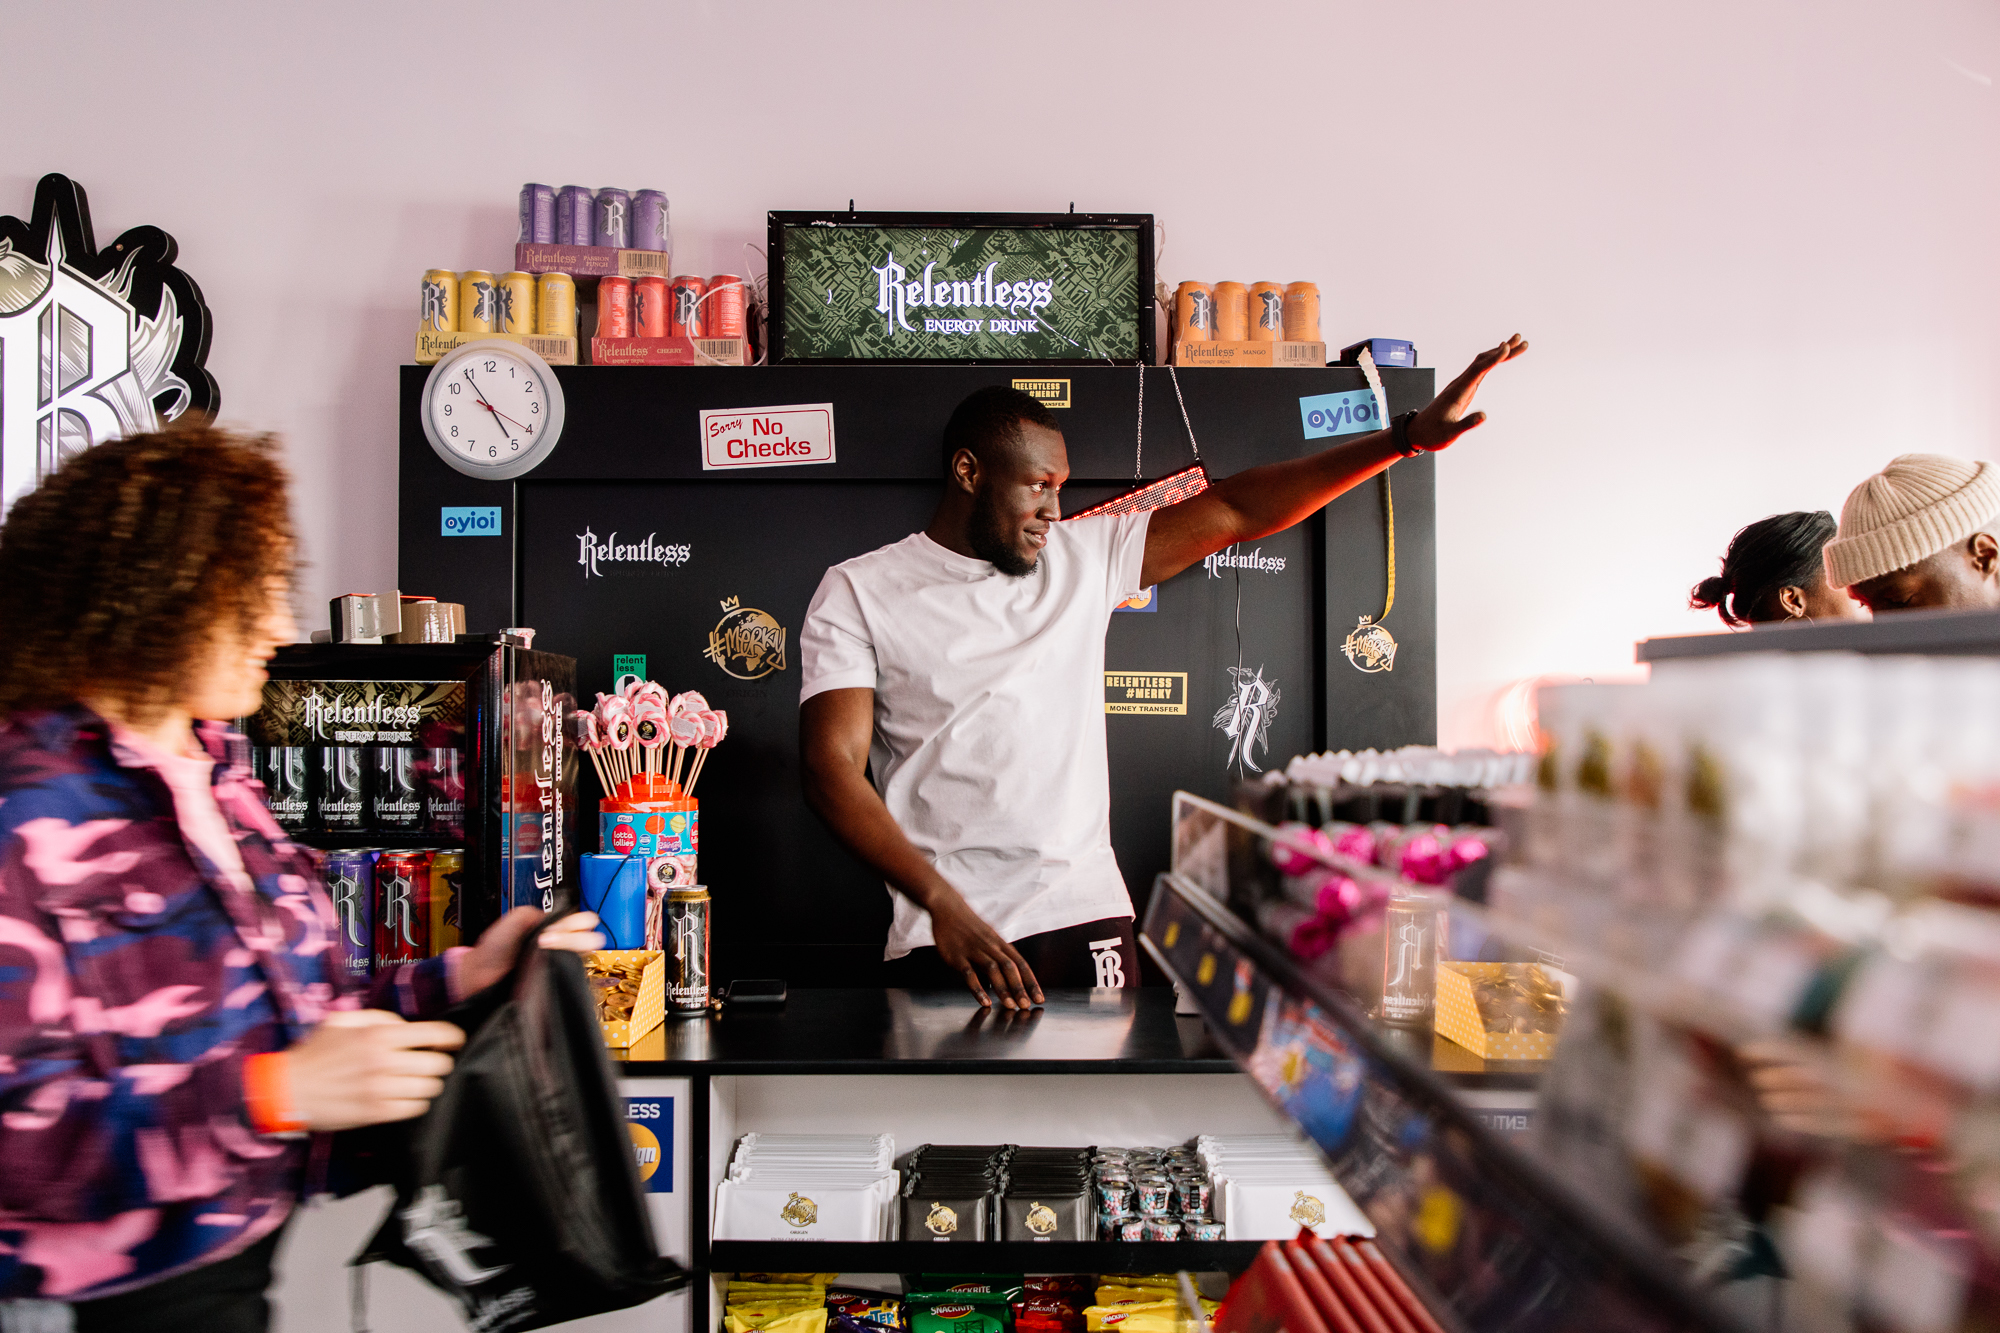 Stormzy, Relentless, pop up, how to build a pop up, London pop up, things to see in London, short-term retail,